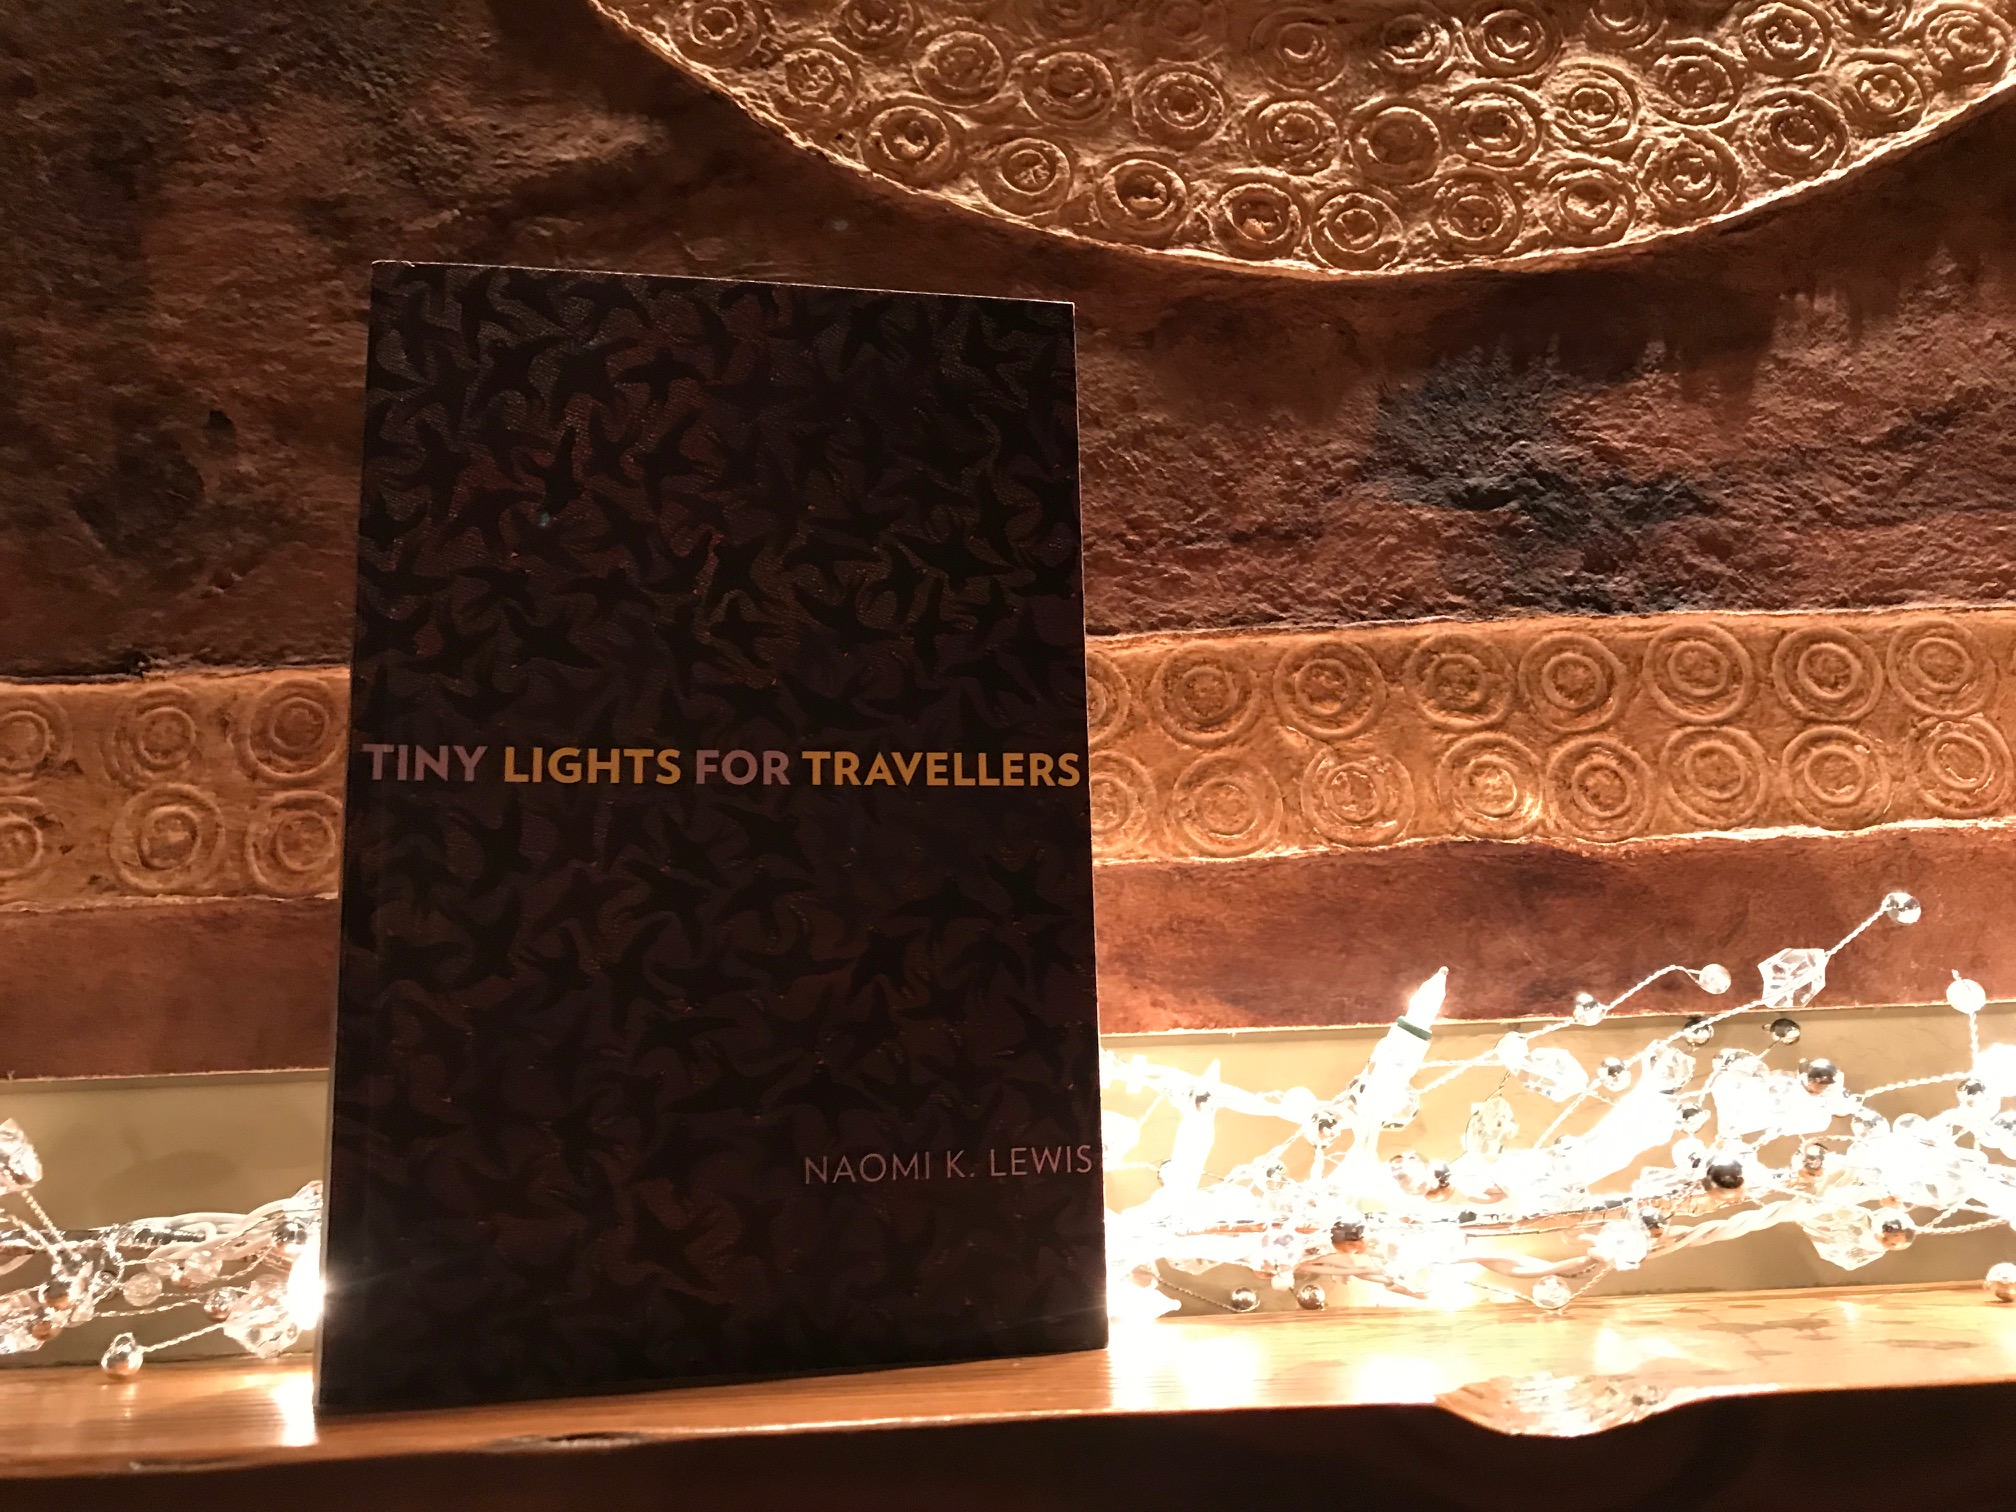 Book Review: Tiny Lights for Travellers by Naomi K. Lewis